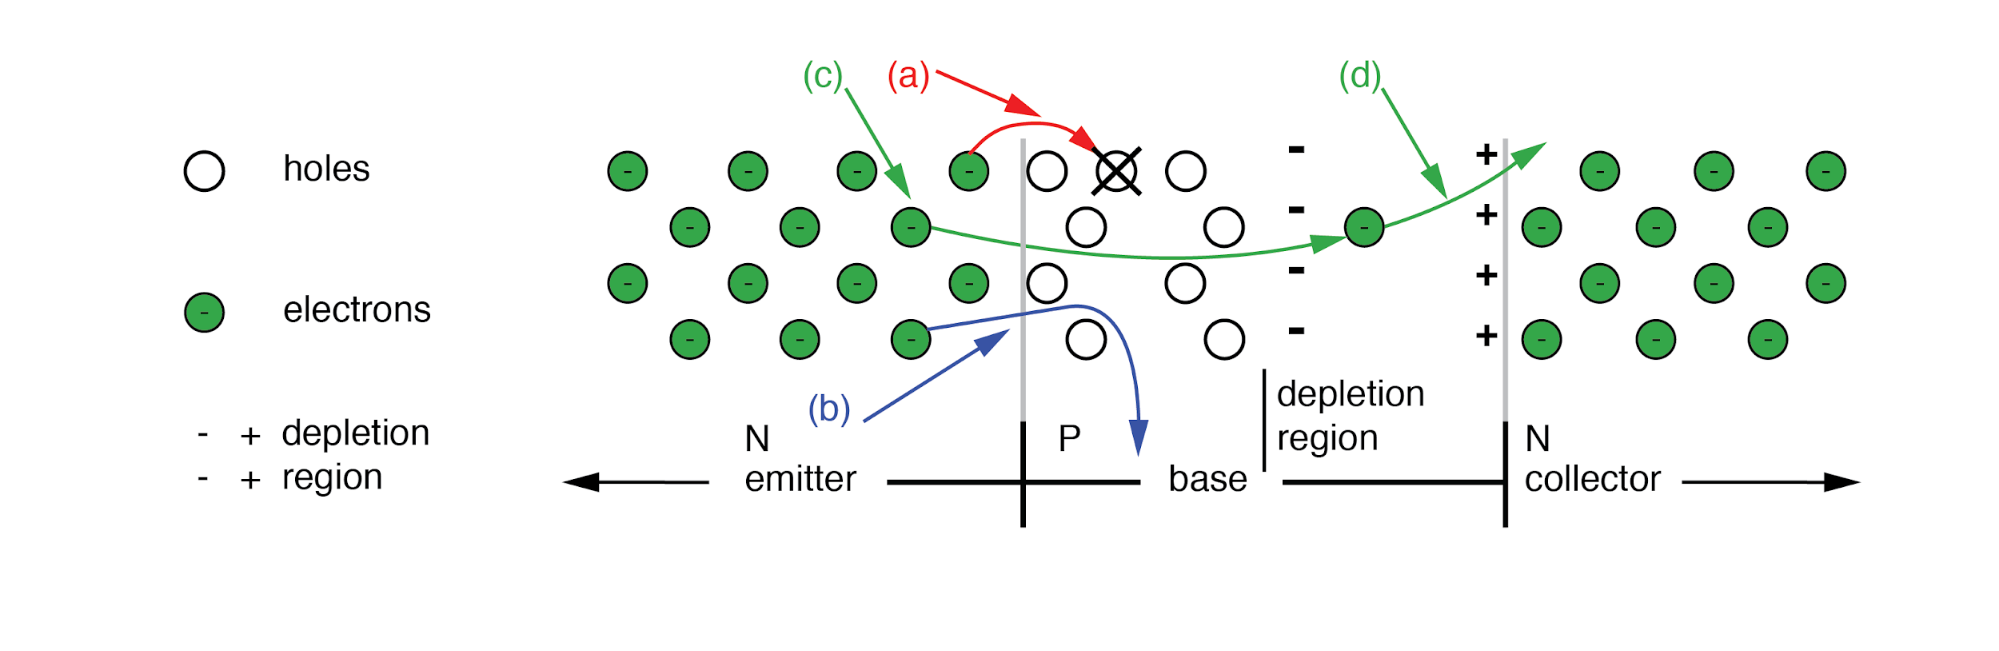 Disposition of electrons entering base: (a) Lost due to recombination with base holes. (b) Flows out base lead. (c) Most diffuse from emitter through thin base into base-collector depletion region, and (d) are rapidly swept by the strong depletion region electric field into the collector.